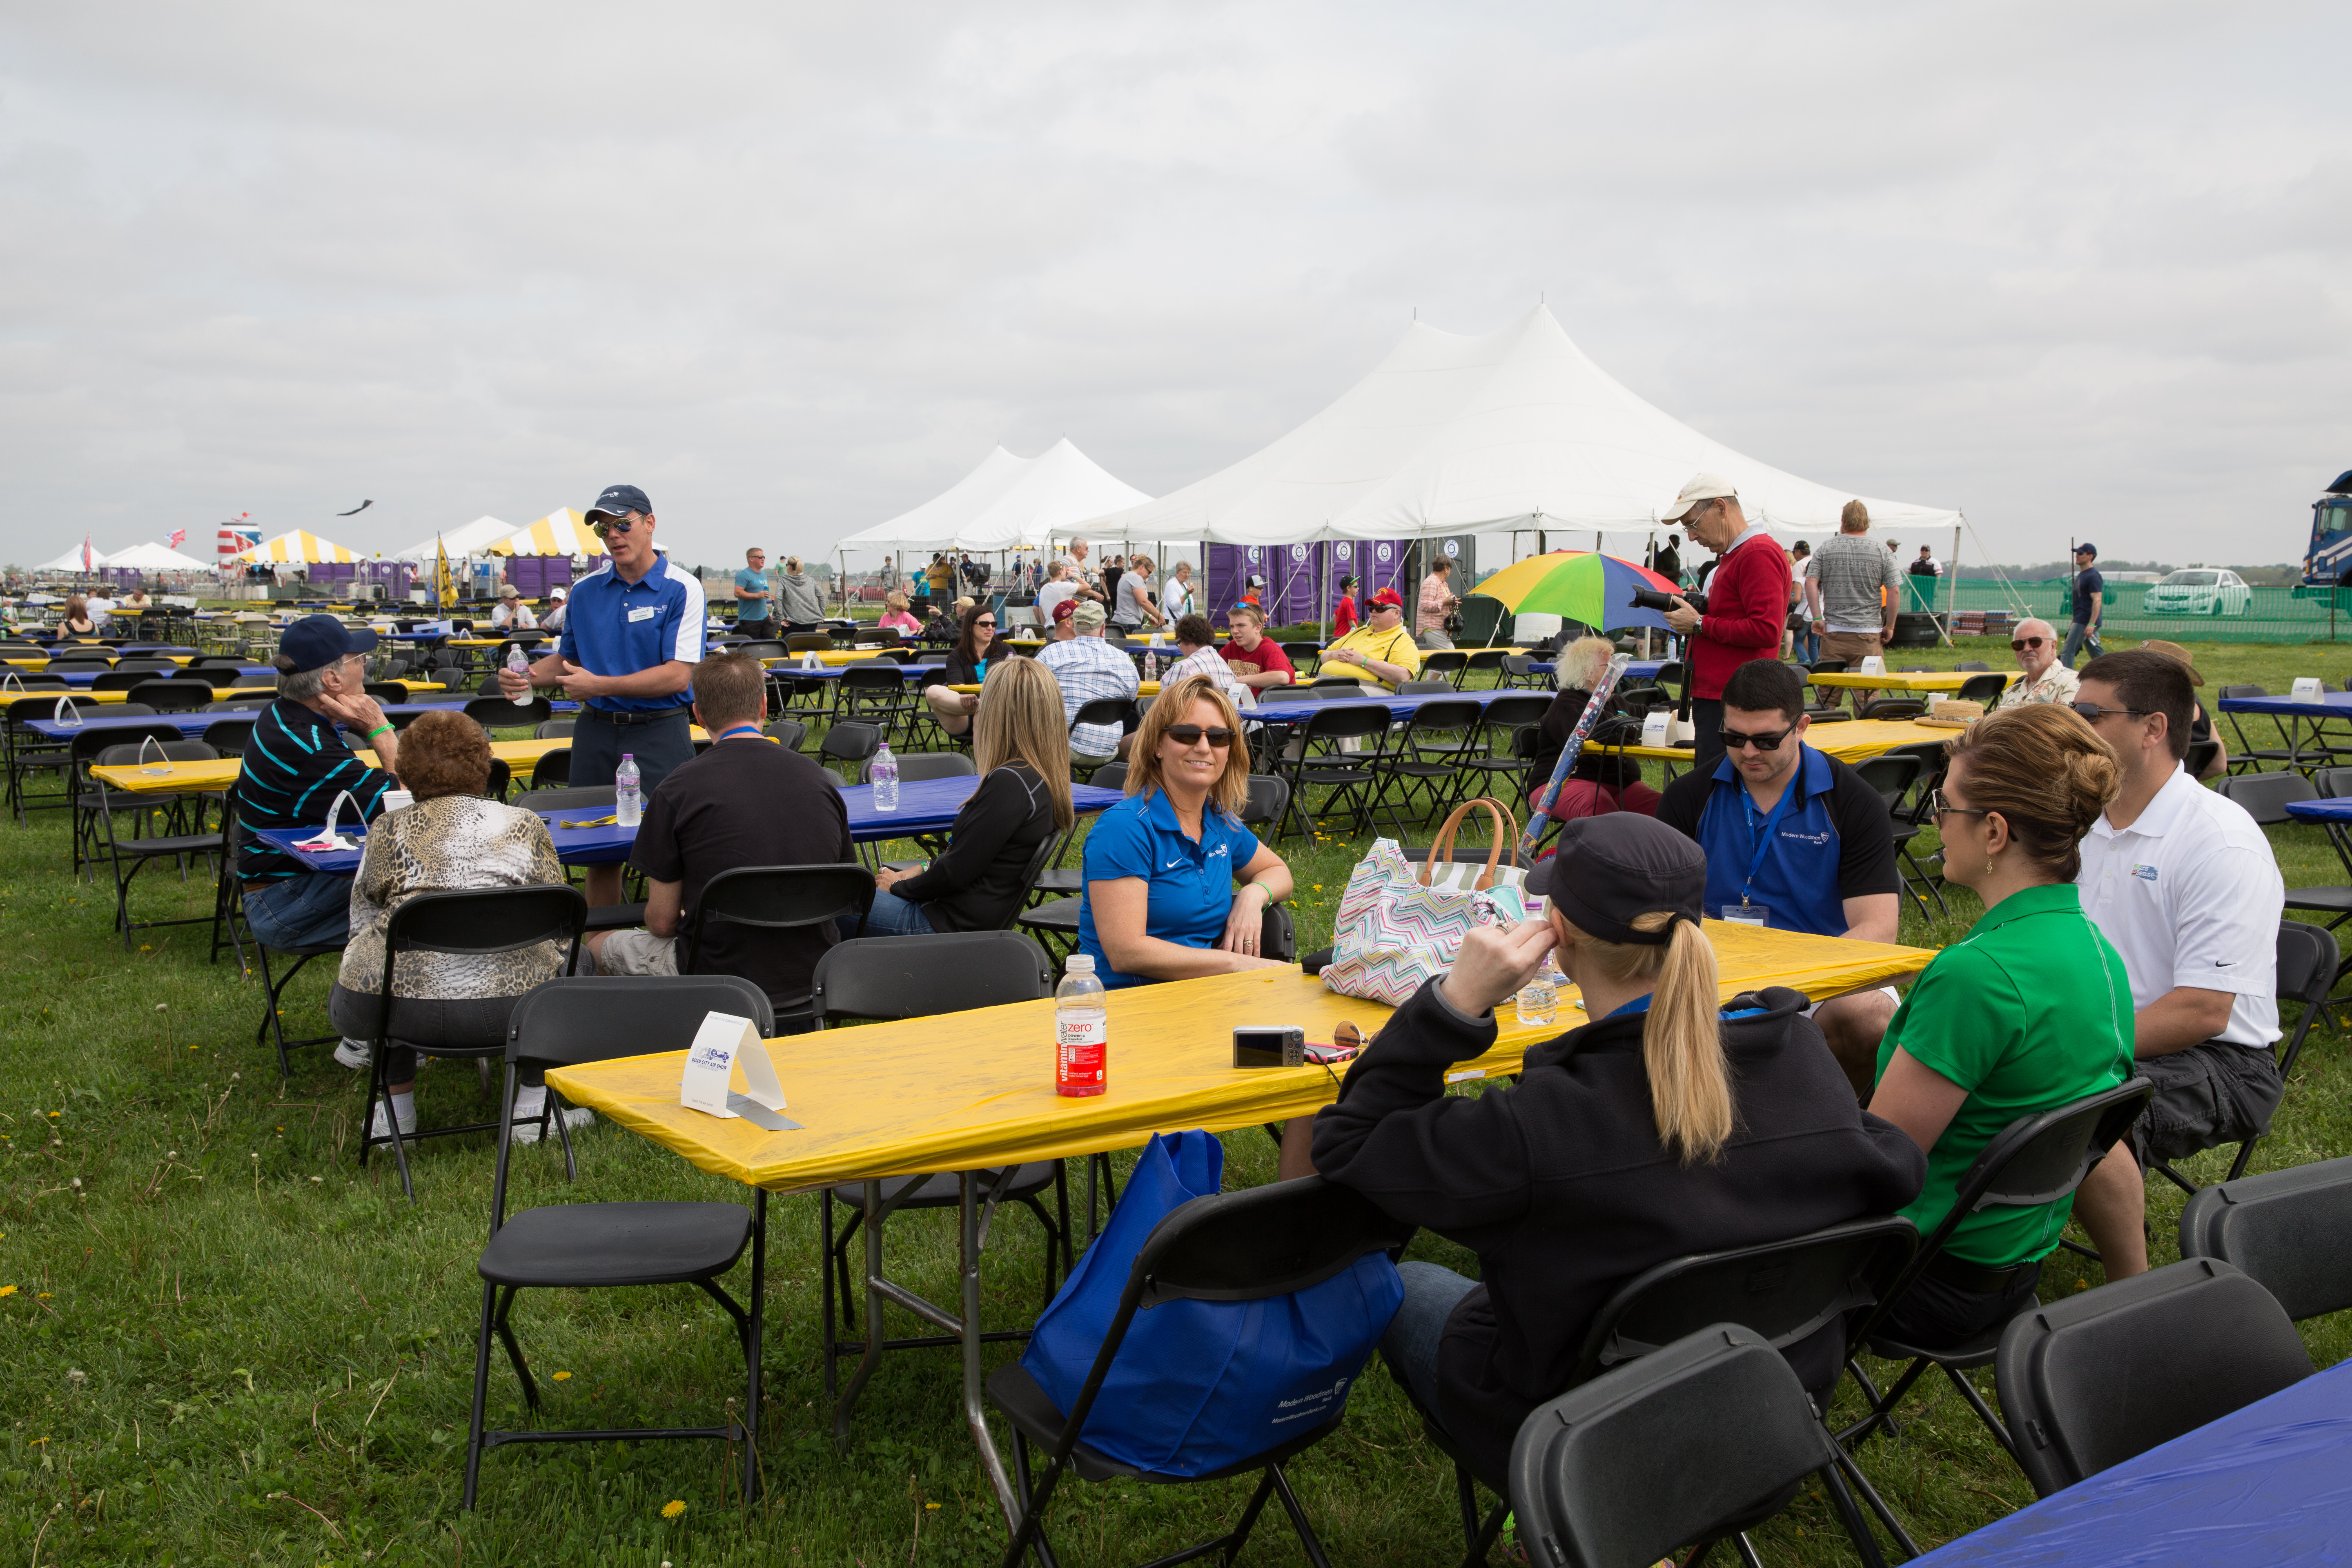 chair cover rentals quad cities stool retro event set up for 2015 city airshow in davenport ia